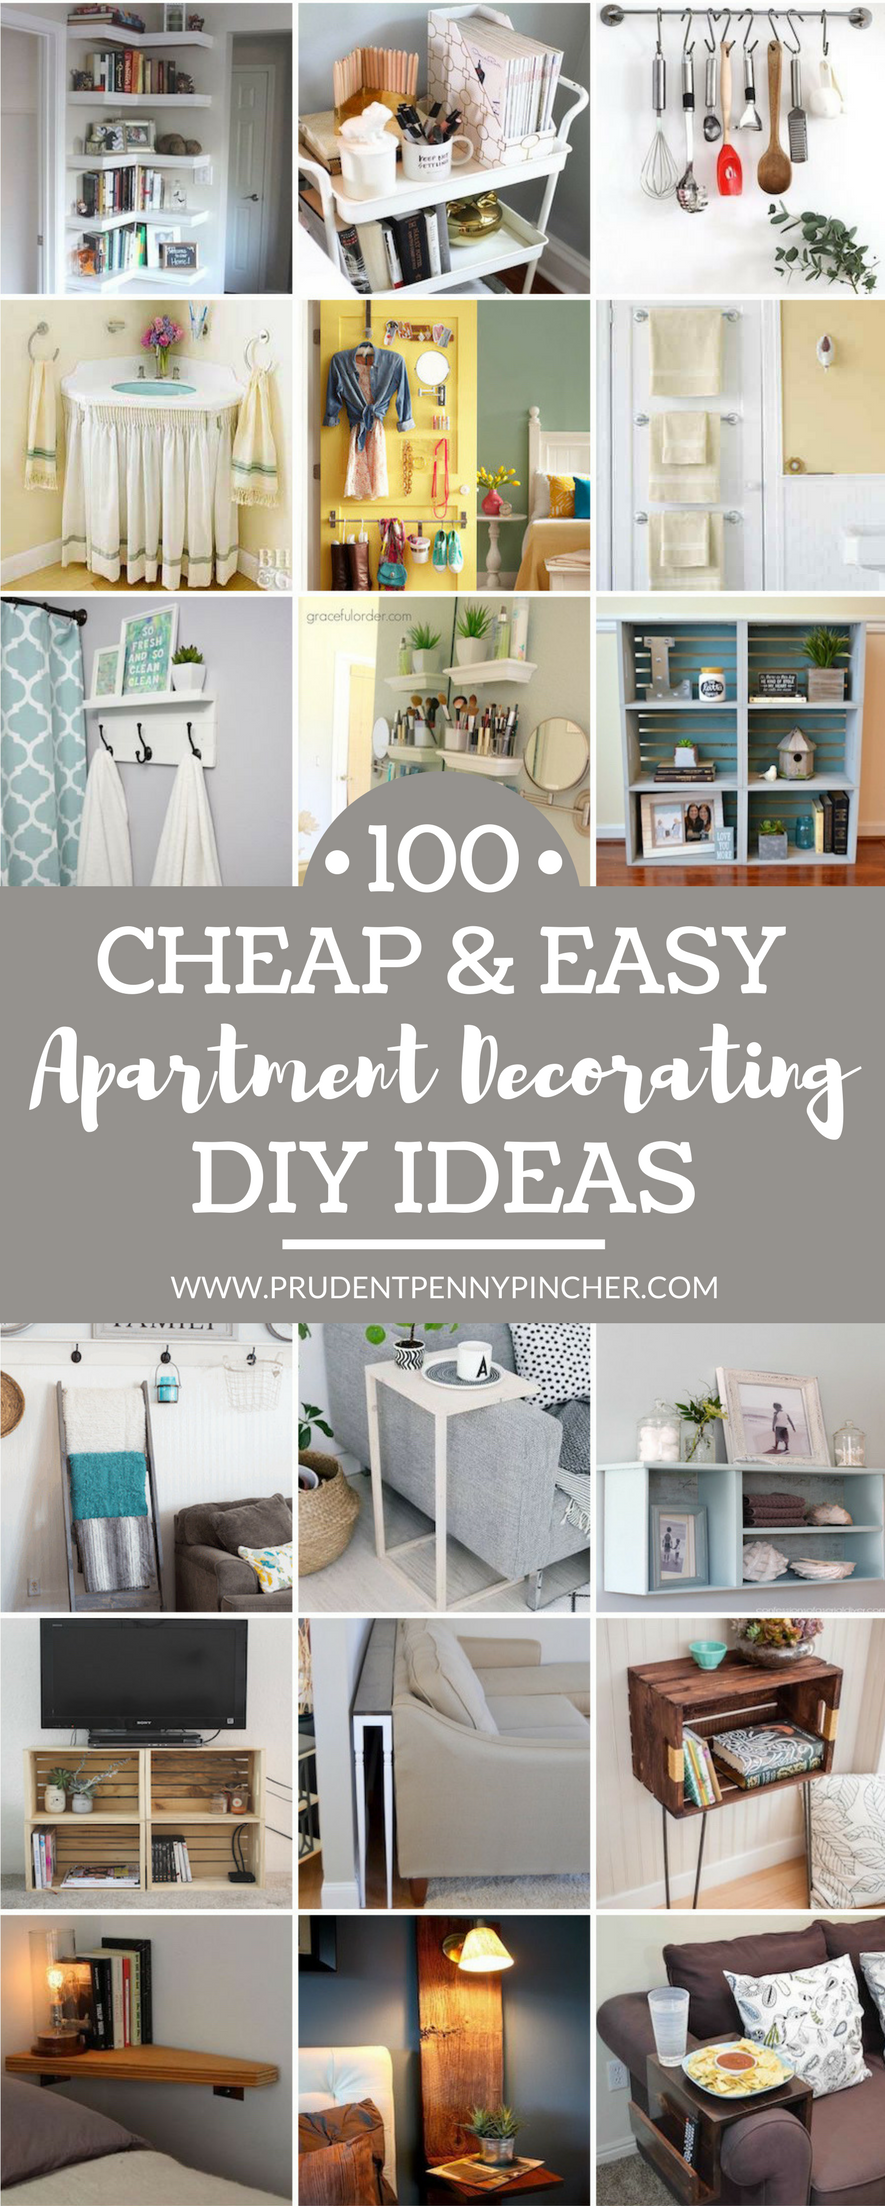 Apartment Decorating Diy